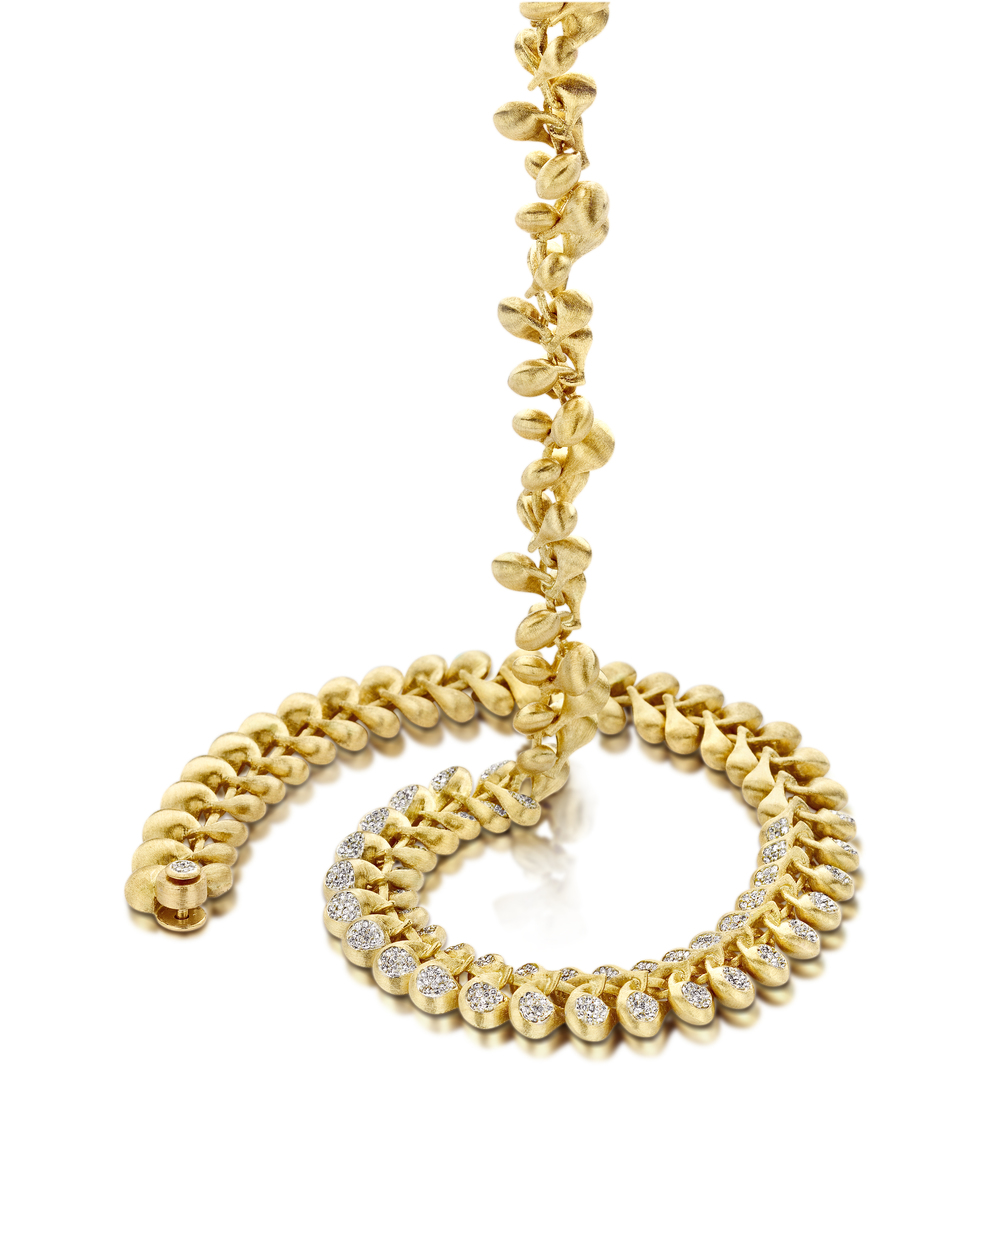 Nanis Necklace | Ventura Jewelers | Van Gundys